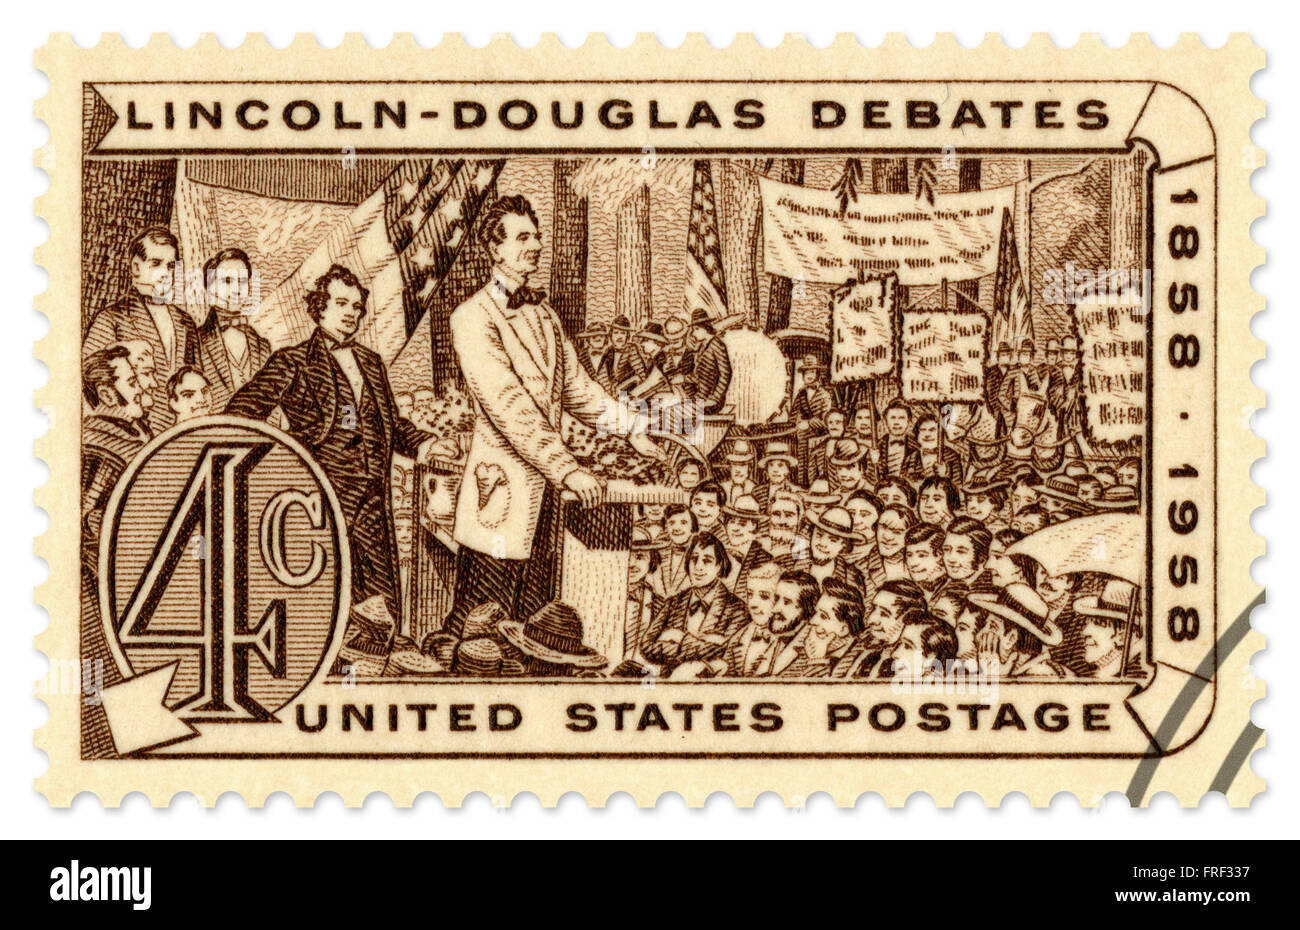 lincoln douglas debate essay Lincoln–douglas debate final debate – drugs are a public health issue not a criminal justice issue affirmative: illegal drug use, is a topic of interest as a public health issue and not a.